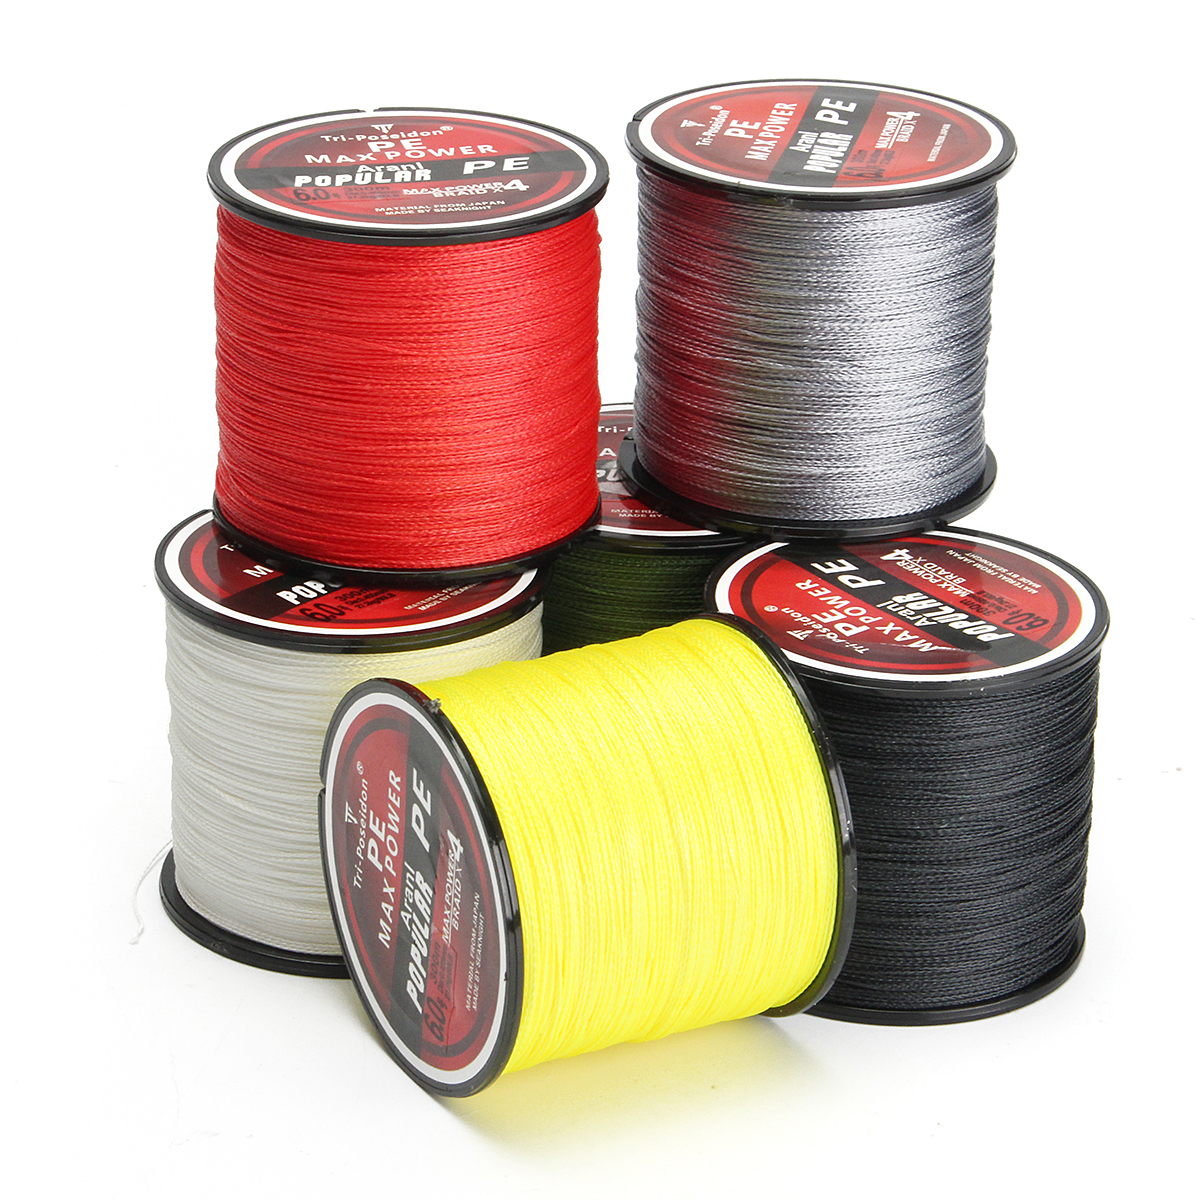 300M Super Strong 4 Strands PE Spectra Braided Wire Fish Rope Sea Fishing Lines 8-